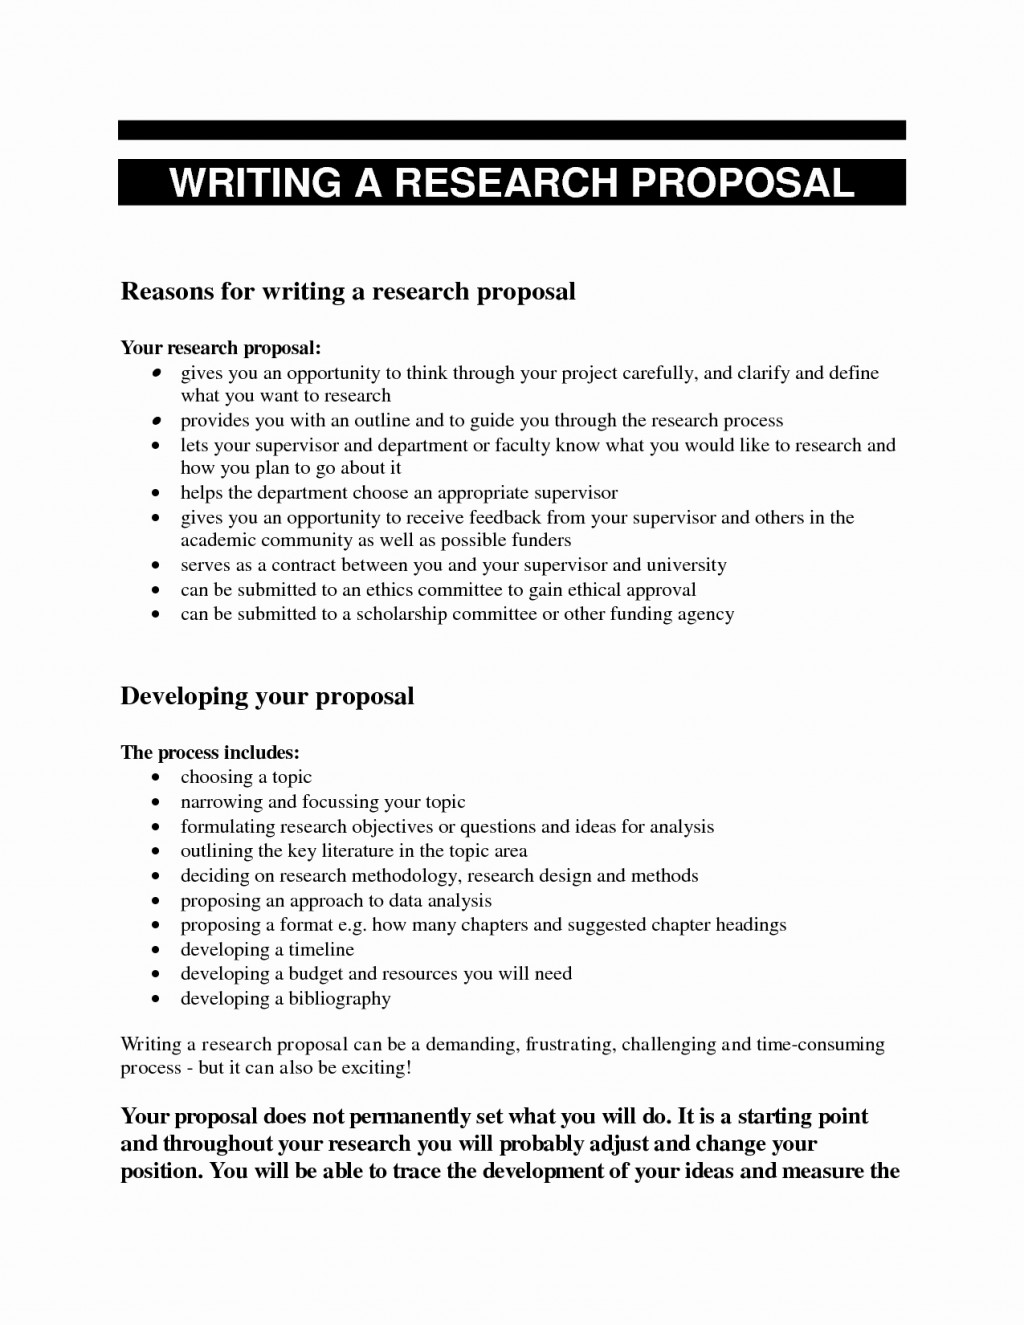 016 How To Write Research Paper Proposal Sample Essay Template For Topics College Students Amazing A In Apa Format Mla Large